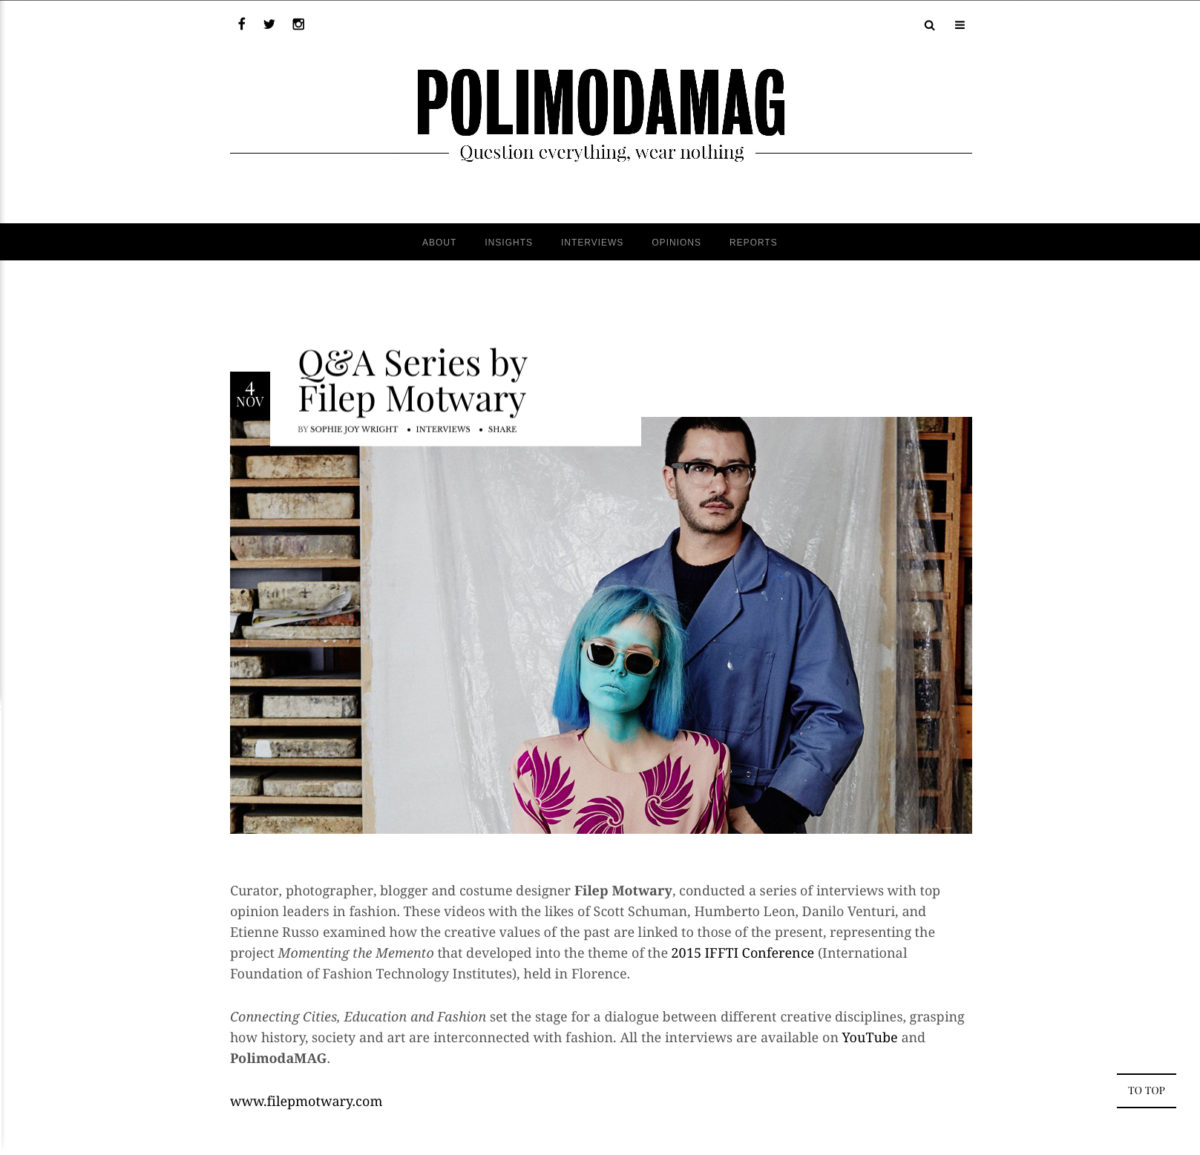 Curator, photographer, blogger and costume designer Filep Motwary, conducted a series of interviews with top opinion leaders in fashion. These videos with the likes of Scott Schuman, Humberto Leon, Danilo Venturi, and Etienne Russo examined how the creative values of the past are linked to those of the present, representing the project Momenting the Memento that developed into the theme of the 2015 IFFTI Conference (International Foundation of Fashion Technology Institutes), held in Florence.  Connecting Cities, Education and Fashion set the stage for a dialogue between different creative disciplines, grasping how history, society and art are interconnected with fashion. All the interviews are available on YouTube and PolimodaMAG.  www.filepmotwary.com